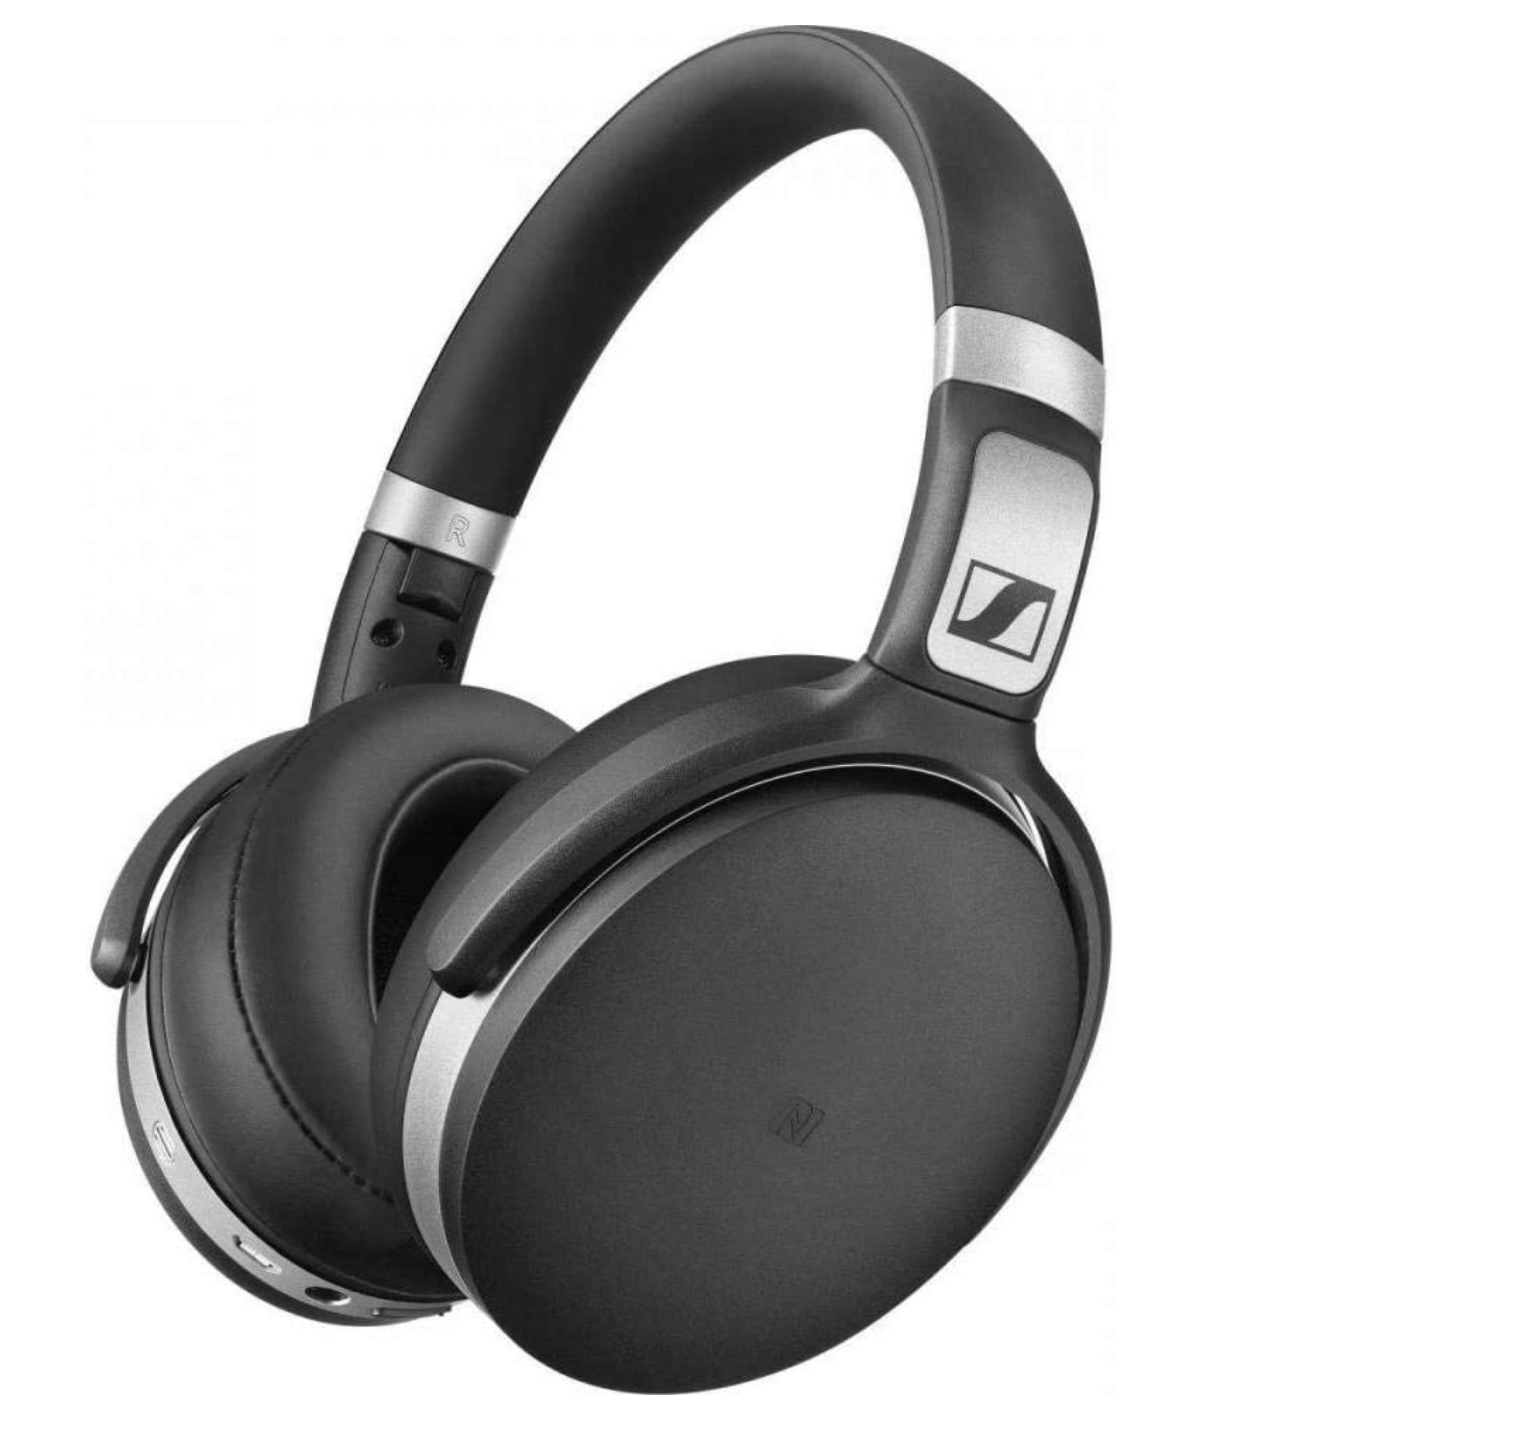 Sennheiser HD 4.50 Bluetooth Wireless Headphones with Active Noise Cancellation